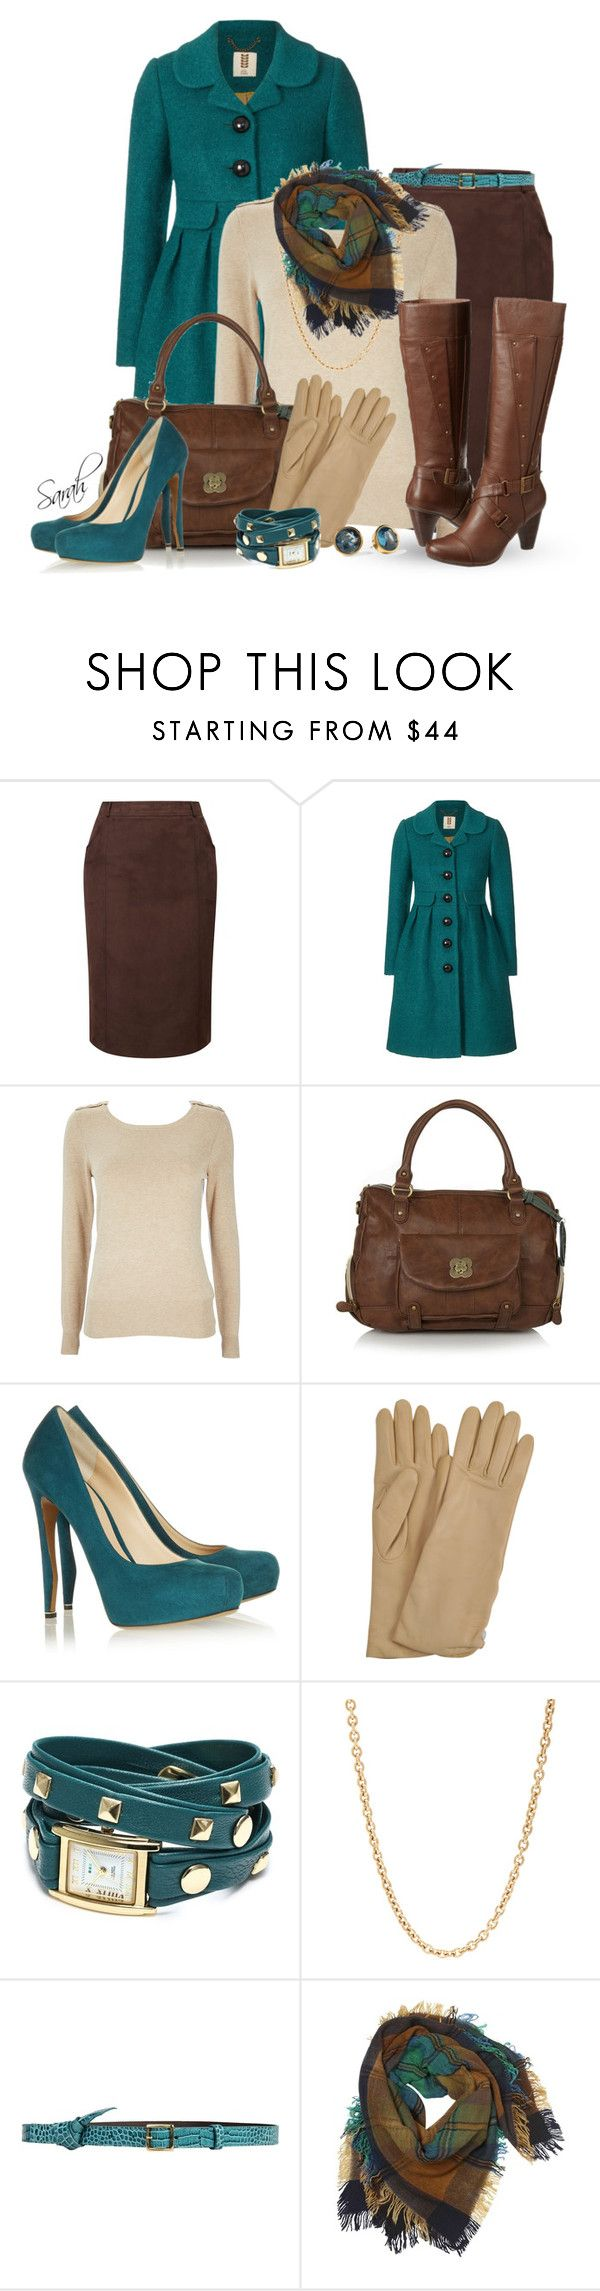 """Teal, Brown, and Beige Gold"" by of-simple-things ❤ liked on Polyvore featuring CC, Orla Kiely, Wallis, Nica, Nicholas Kirkwood, AGNELLE, La Mer, Mark Davis, Philosophy di Alberta Ferretti and Contileoni"